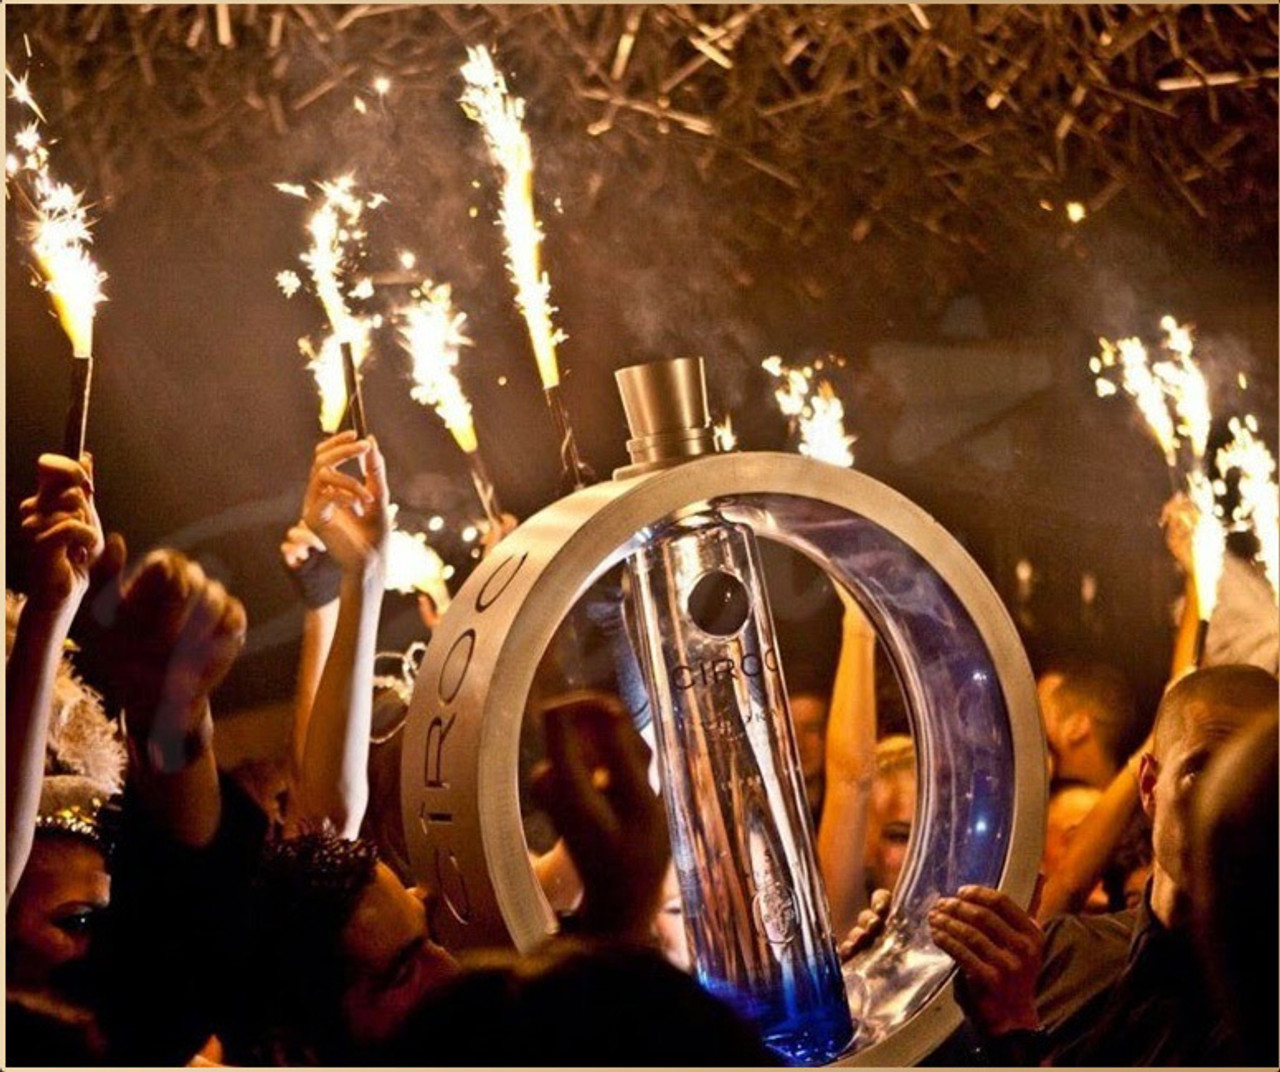 CHAMPAGNE, BOTTLE SPARKLER